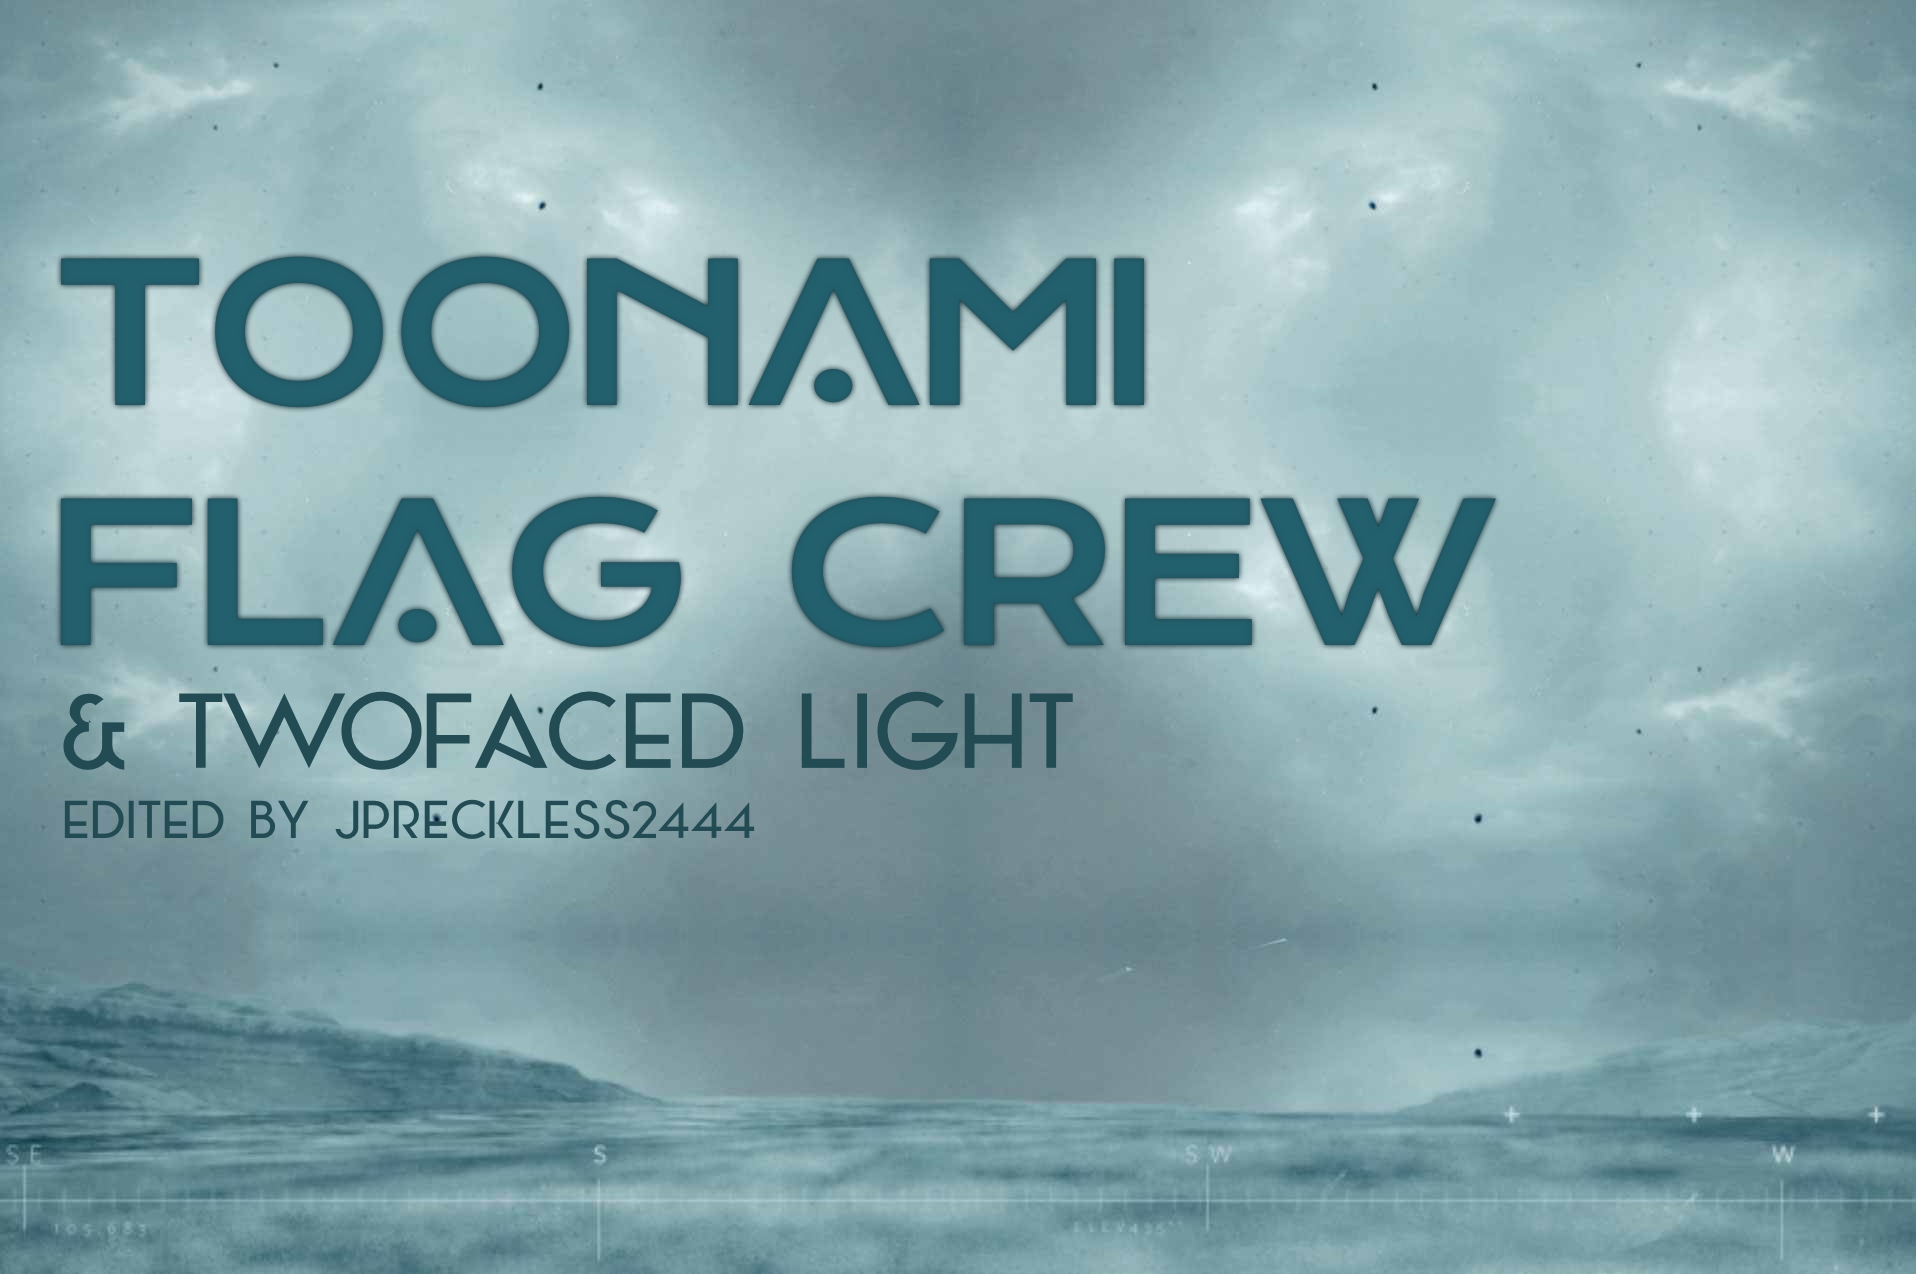 Toonami Flag Crew and Twofaced Light by JPReckless2444